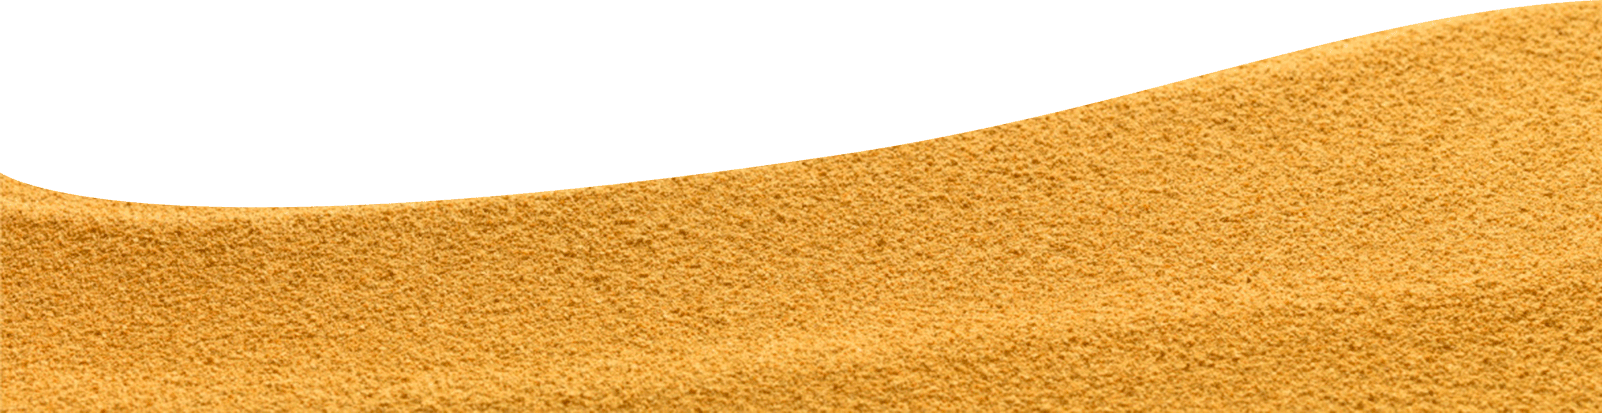 Sand texture png. Images free download